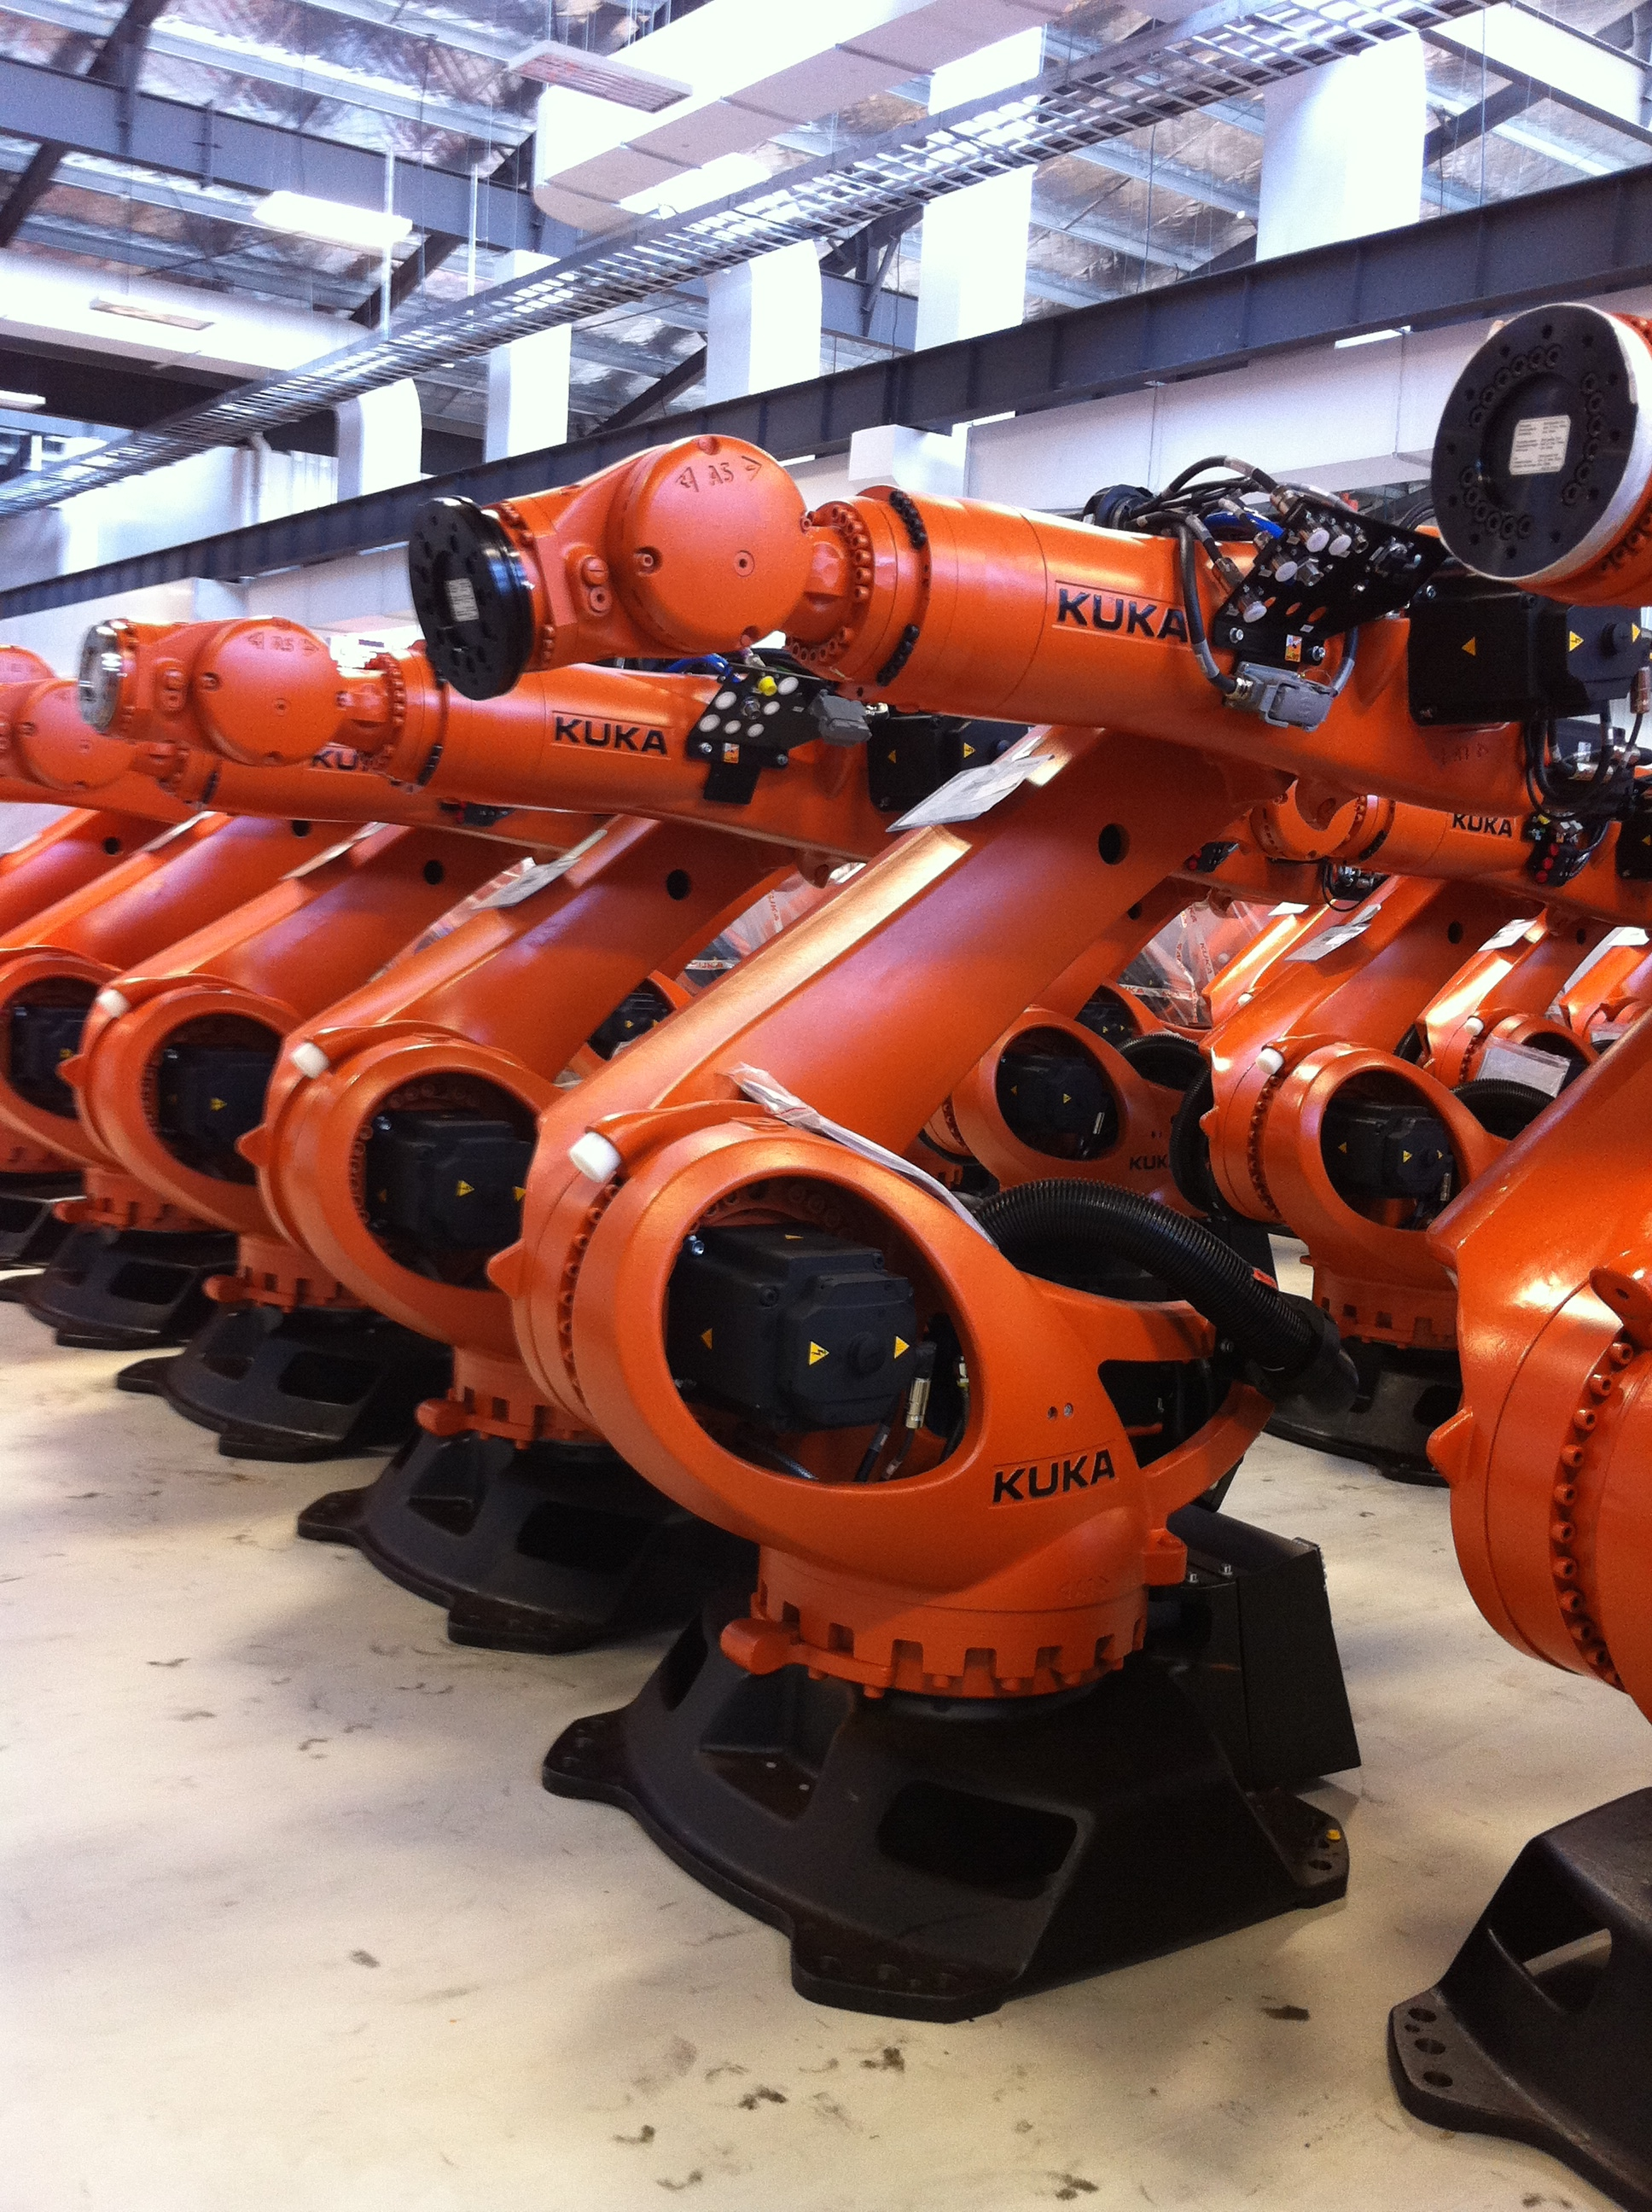 Kuka Robots will be installed at Factorli